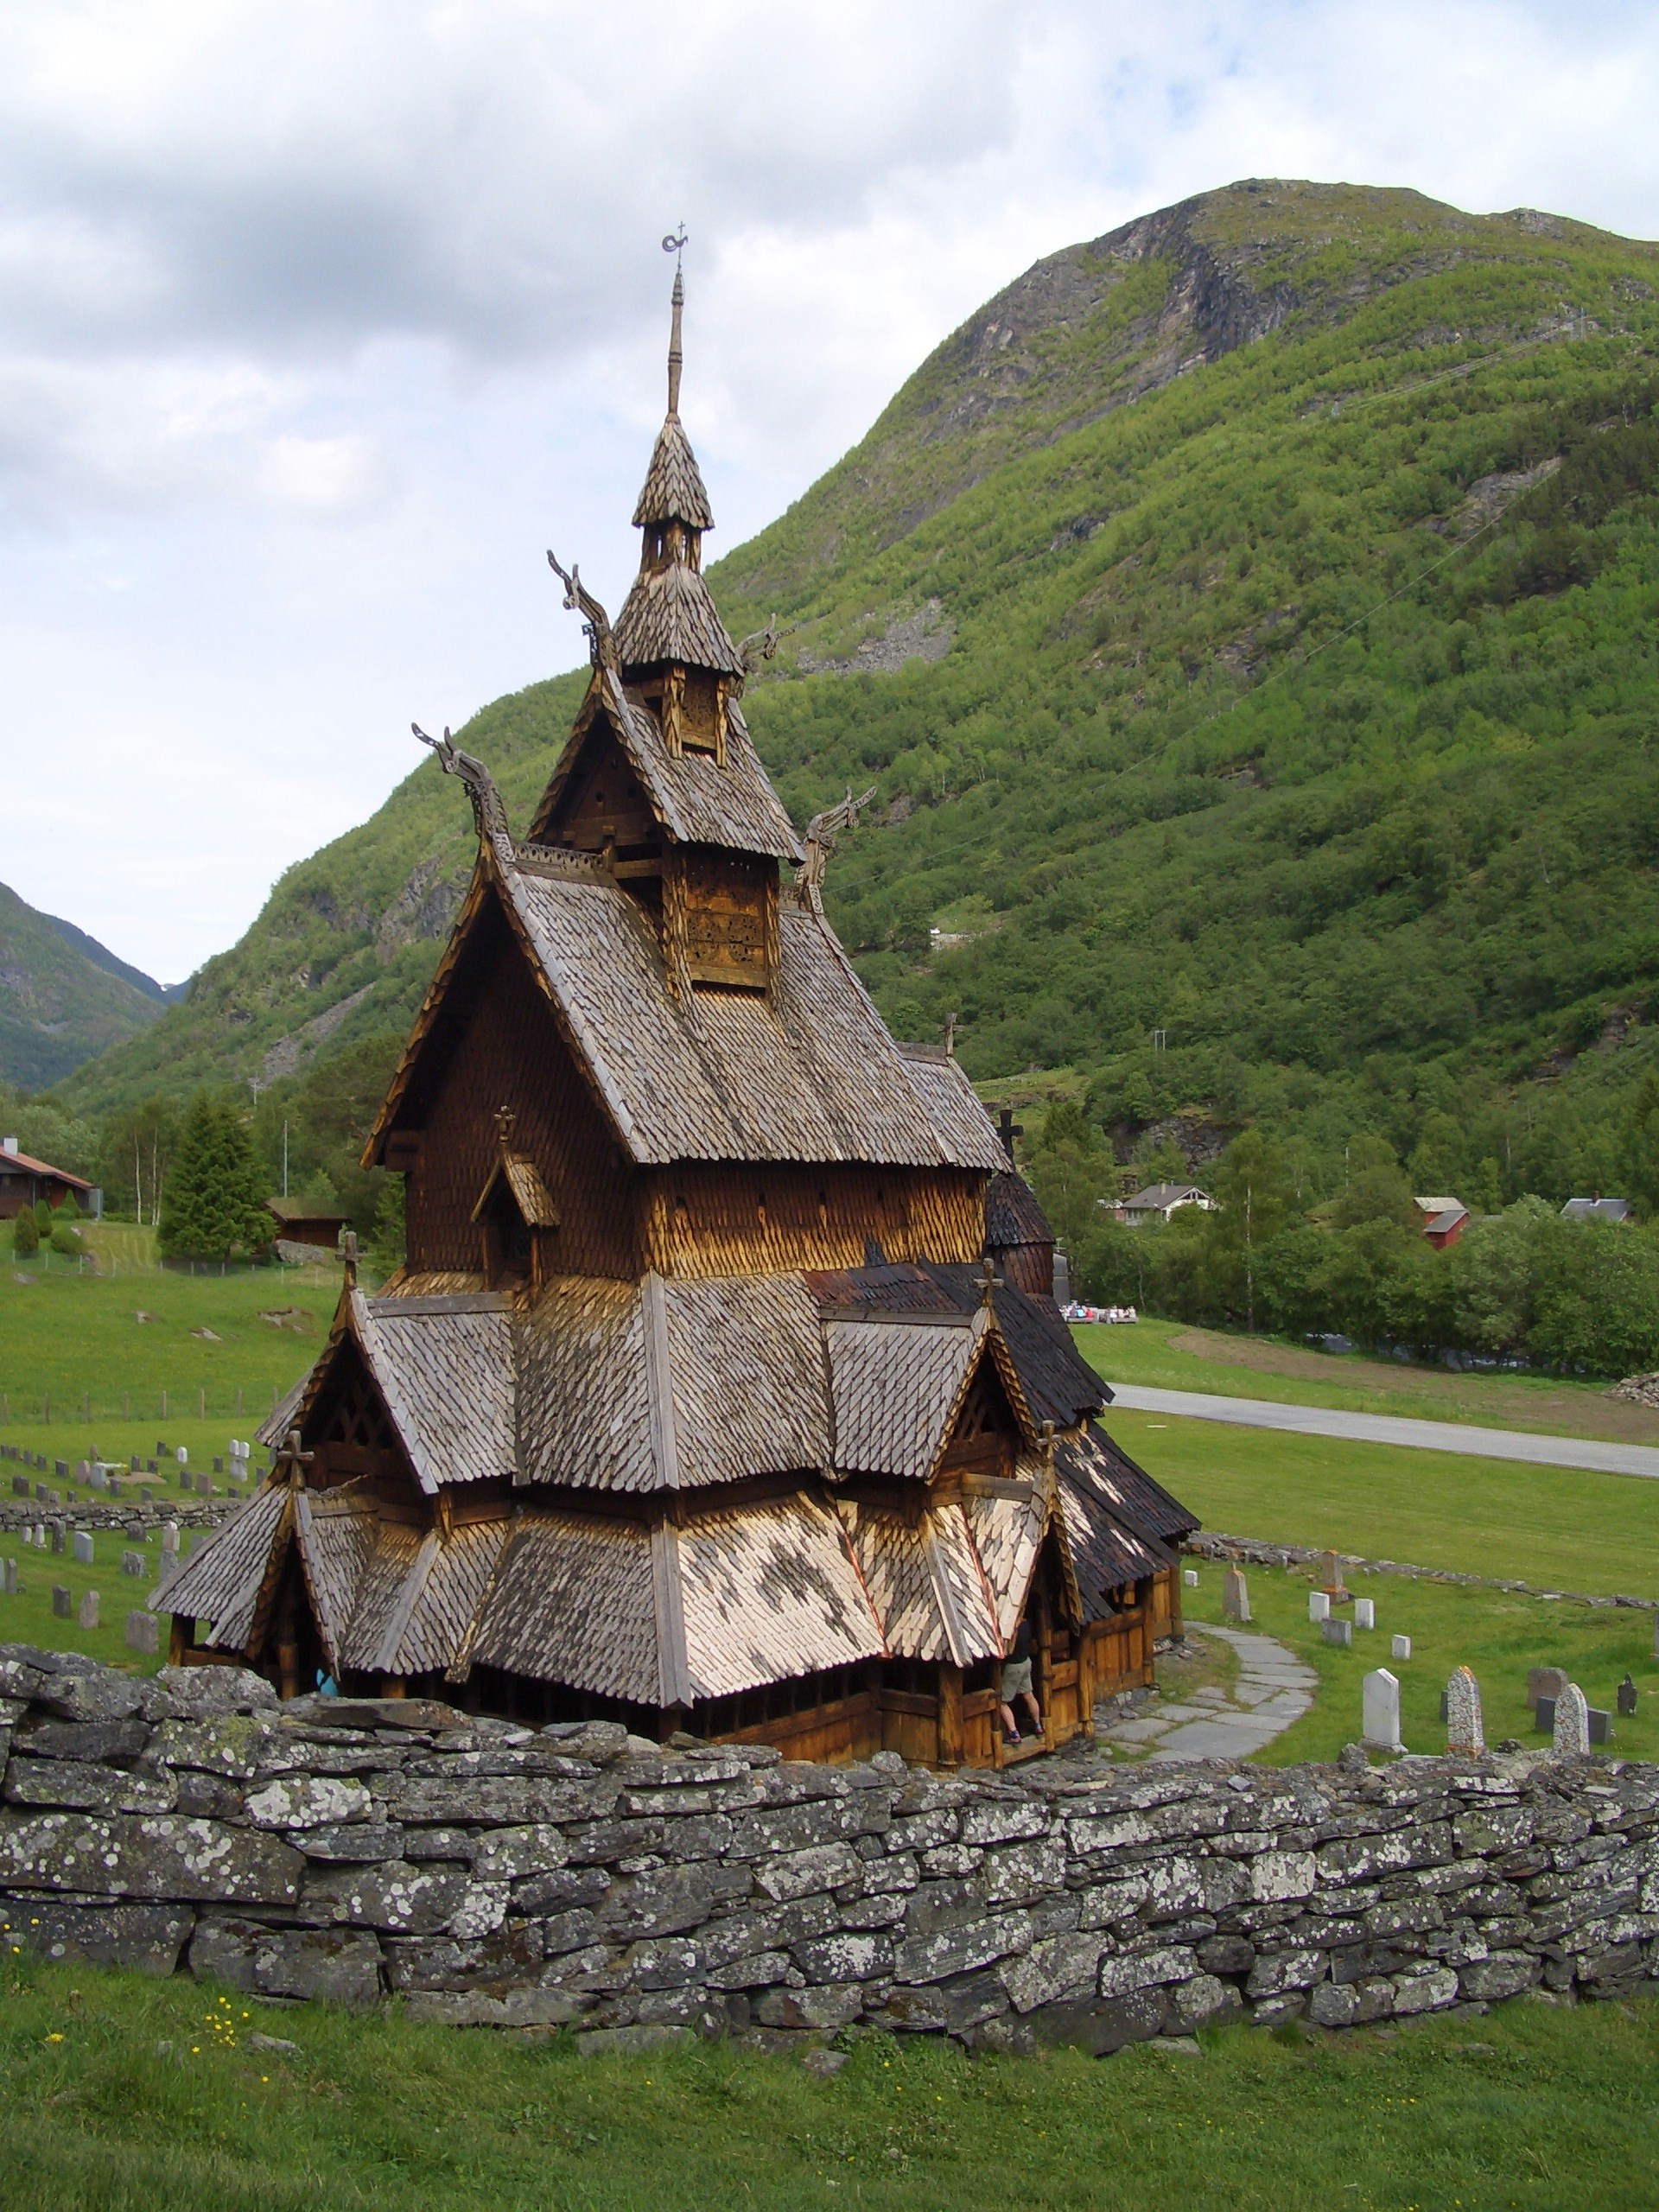 borgund-stave-church-norway-8